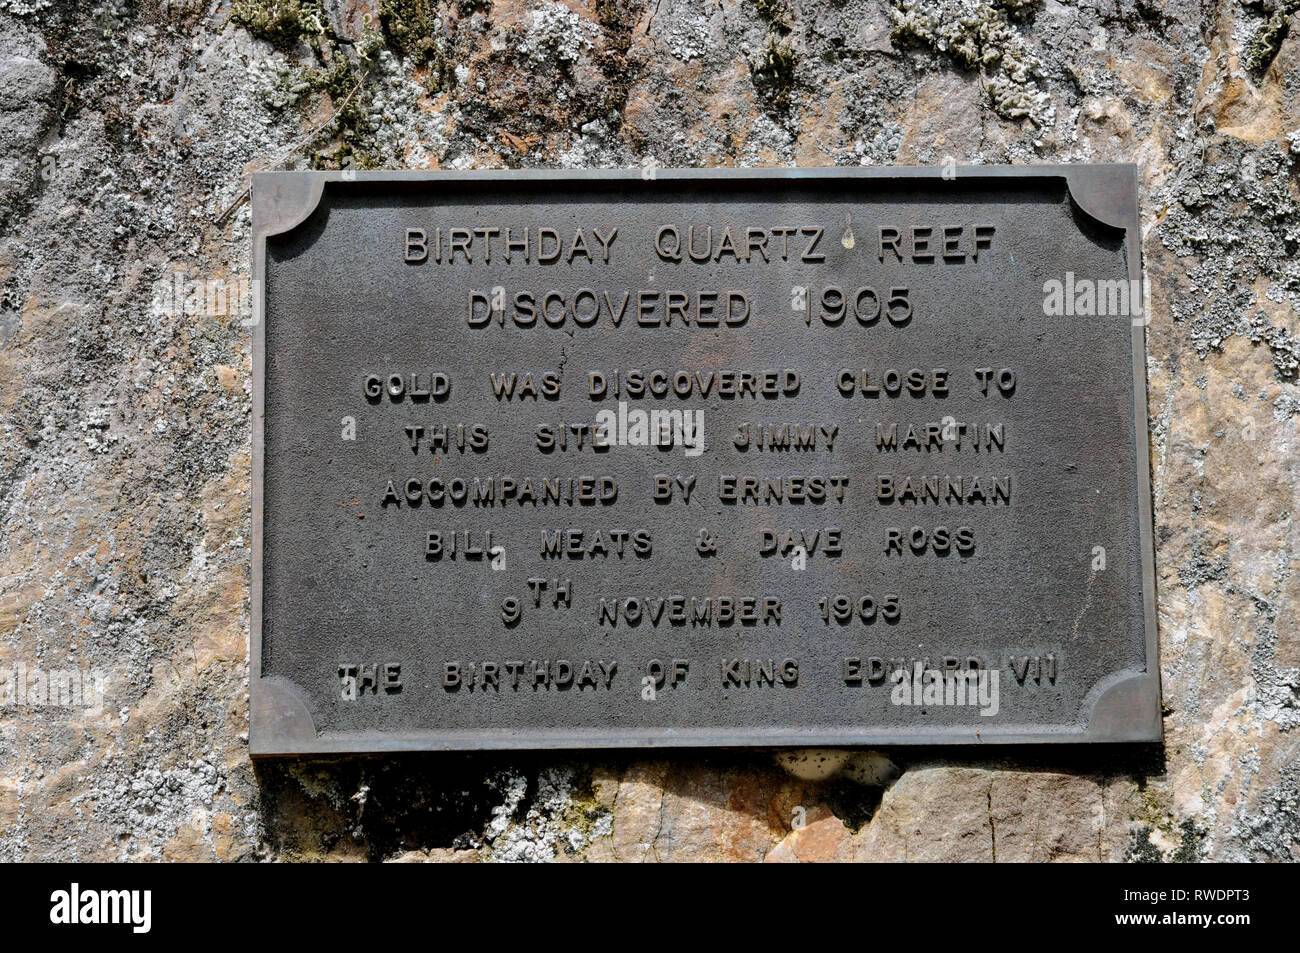 Plaque marking the entrance to the Birthday Quartz Reef. This discovery gave rise to gold mining in the region and the town of Waiuta. - Stock Image